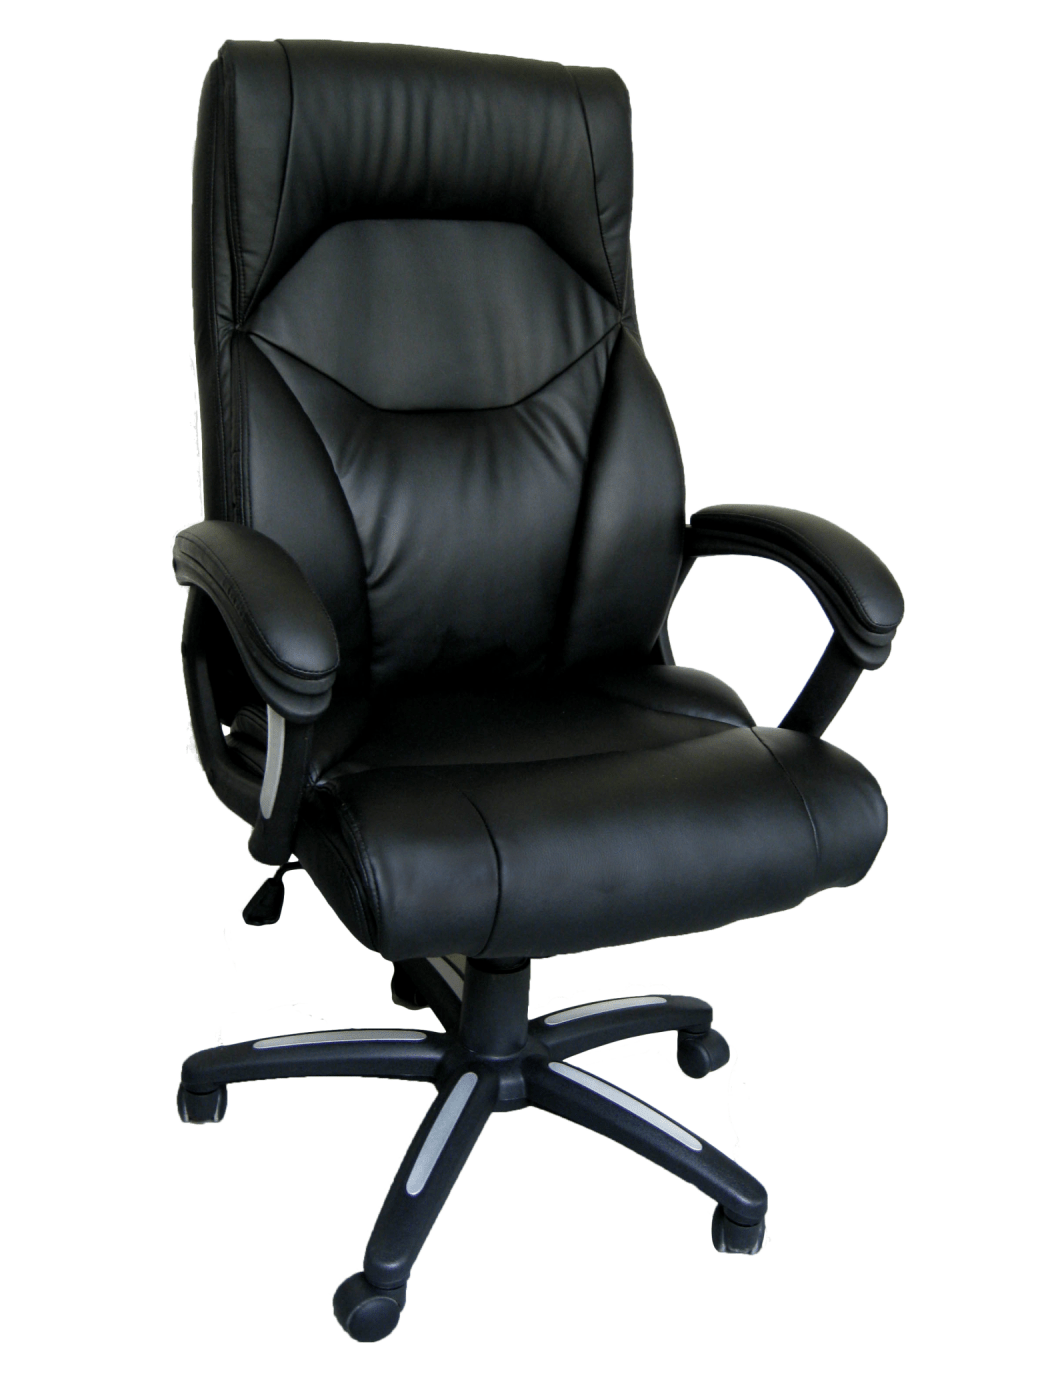 Executive Chair Office Chairs Wellington Bcpt102bk 121 Office Furniture